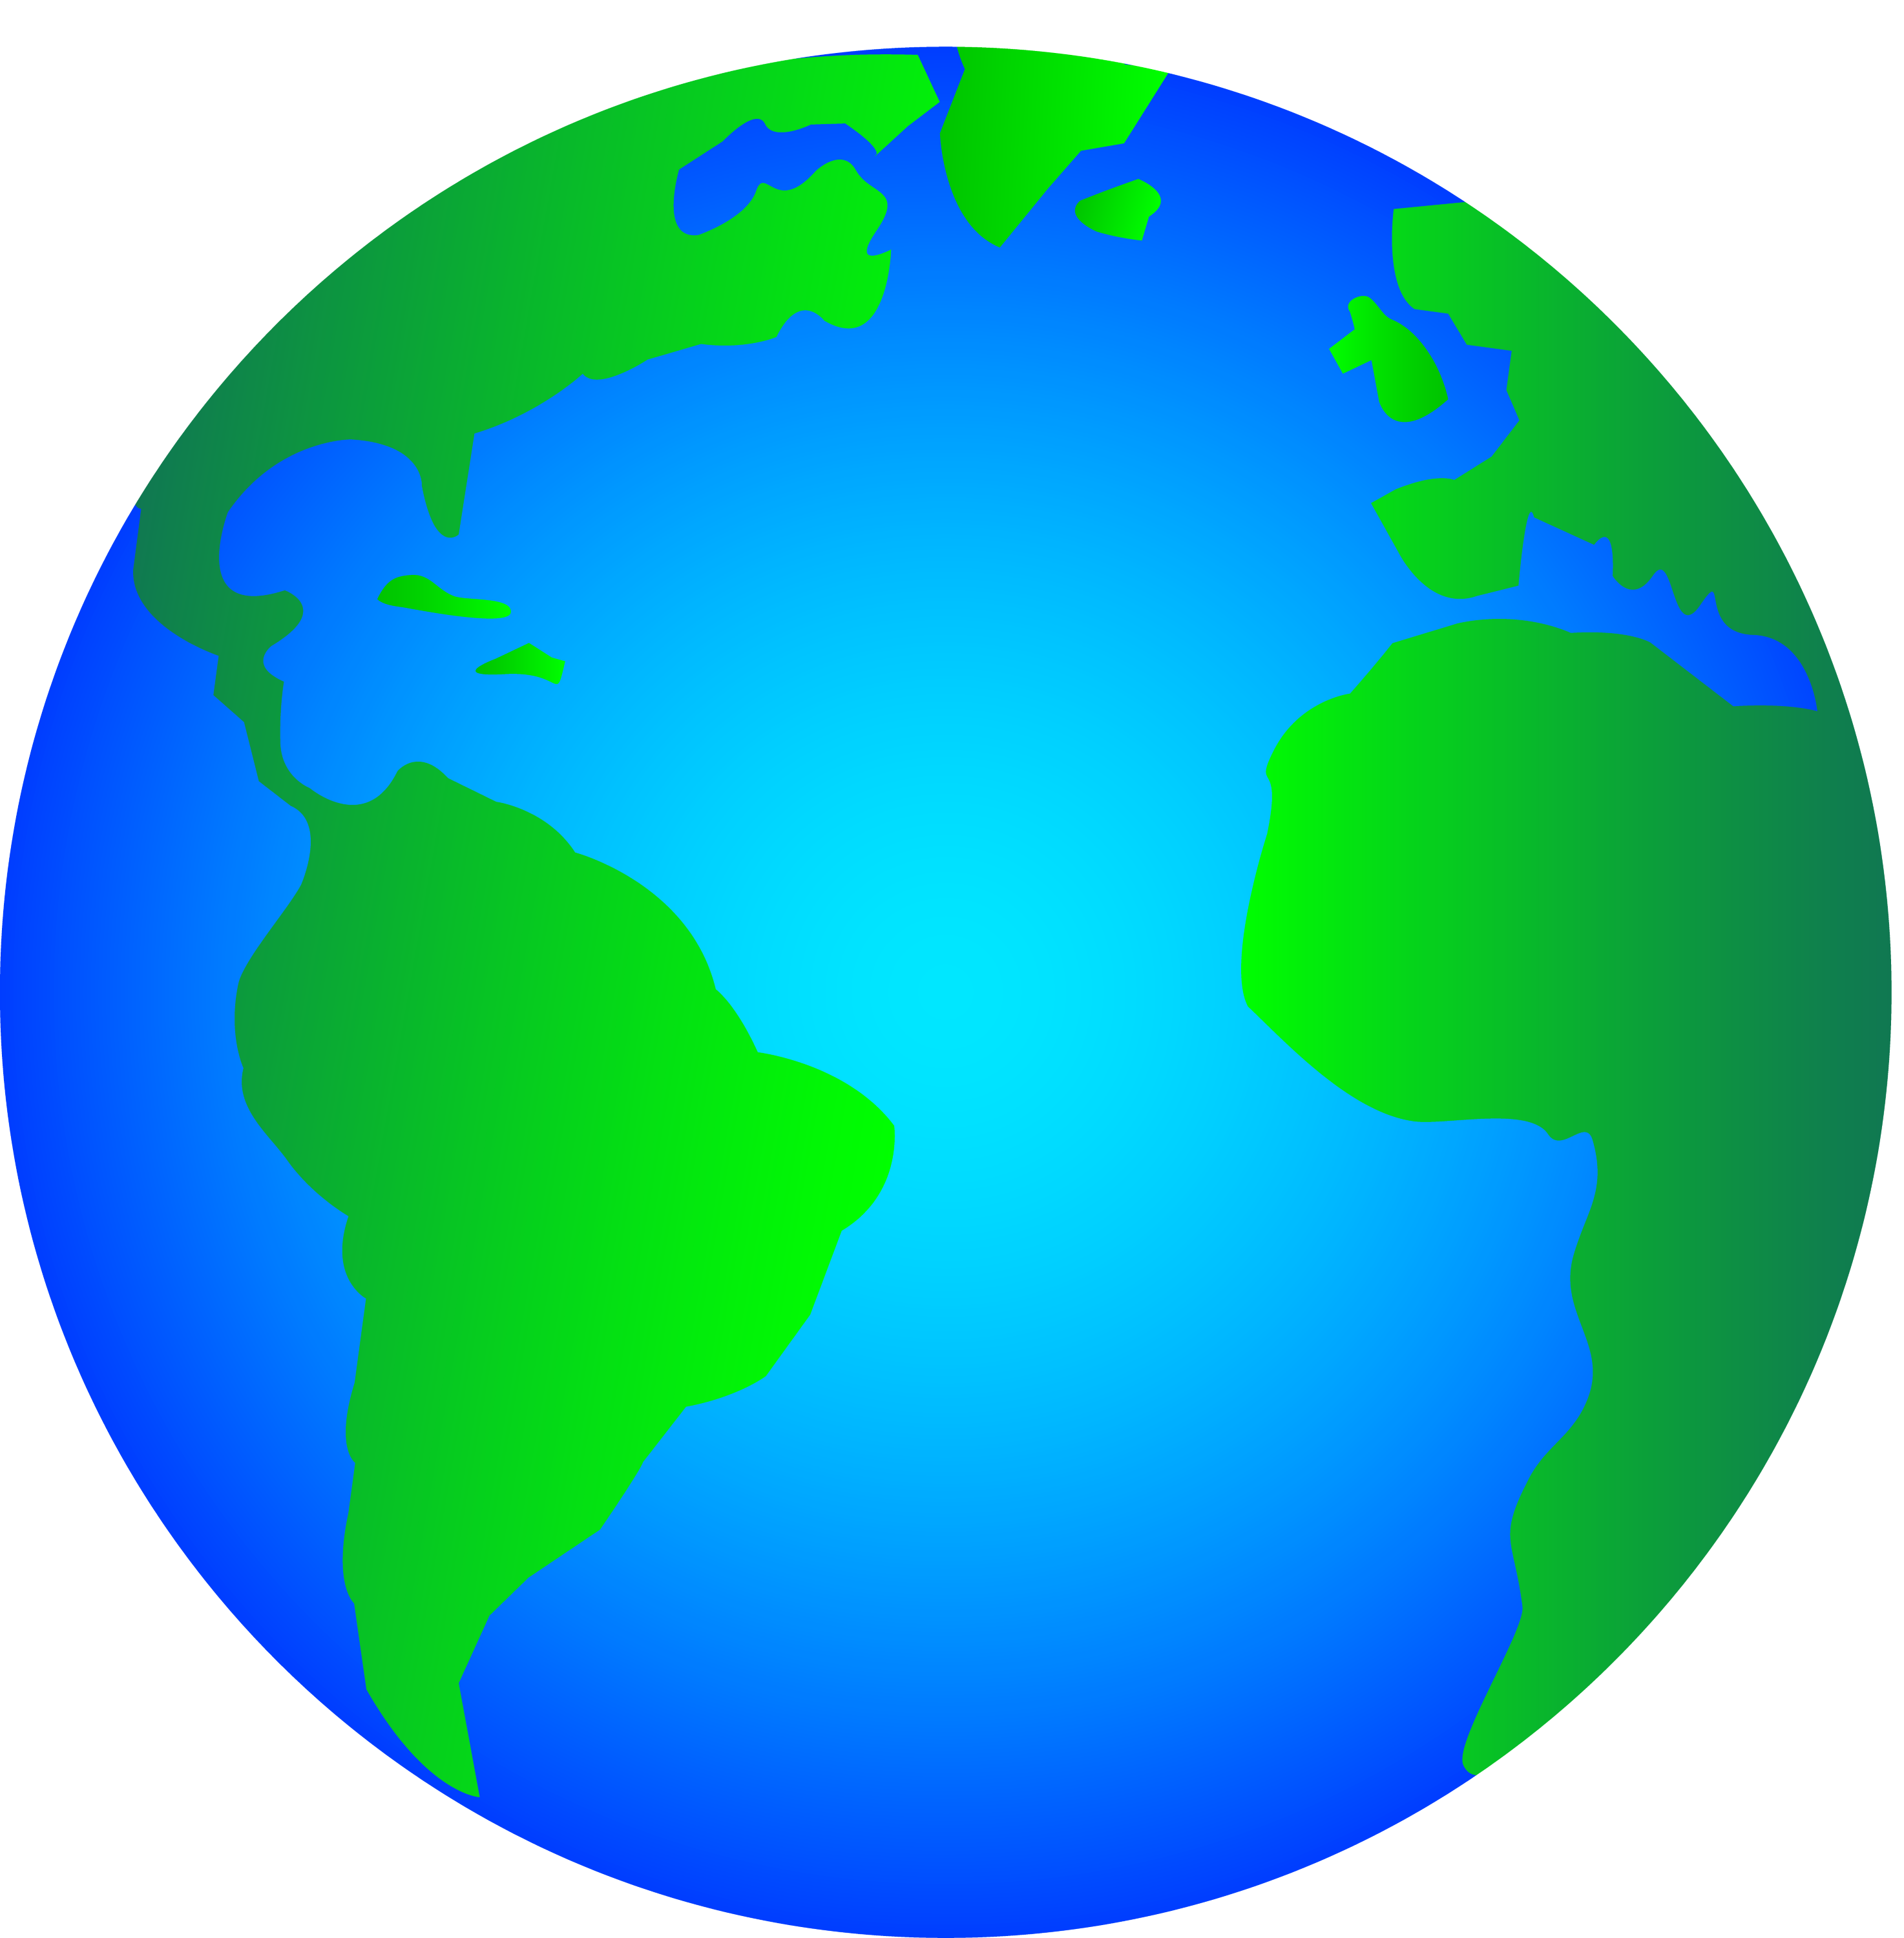 Planet Earth Shiny Logo - Free Clip Art: sweetclipart.com/planet-earth-shiny-logo-404